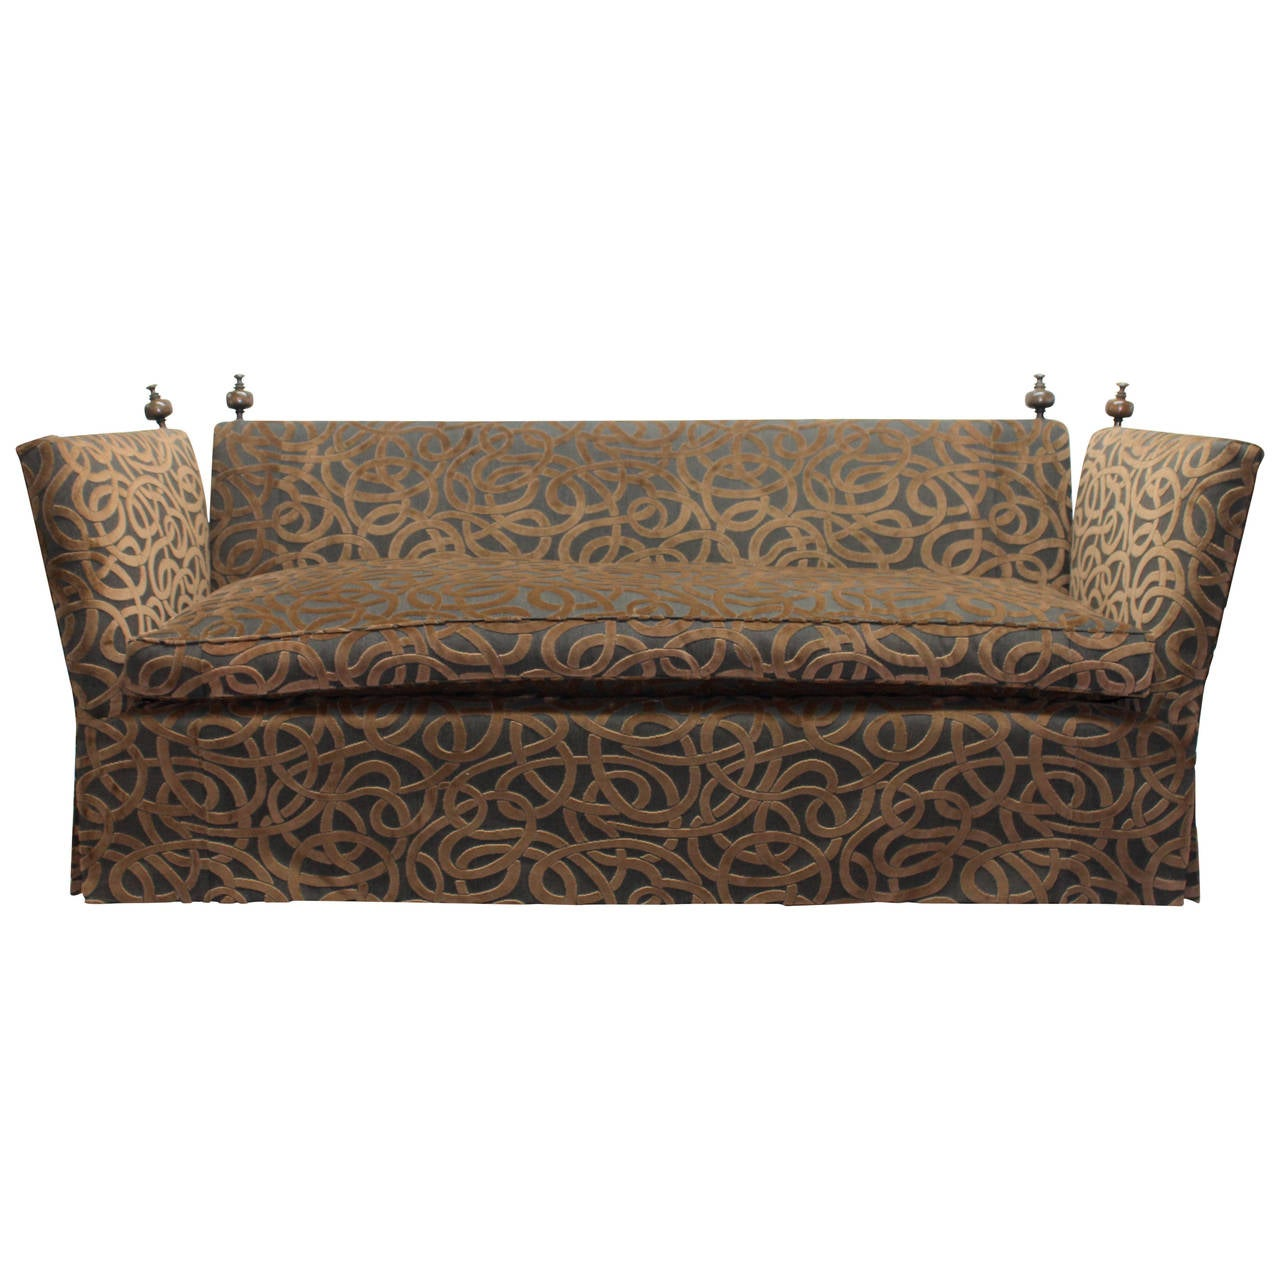 Clic Knole Style Sofa In A Whimsical Sheared Velvet And Woven Fabric